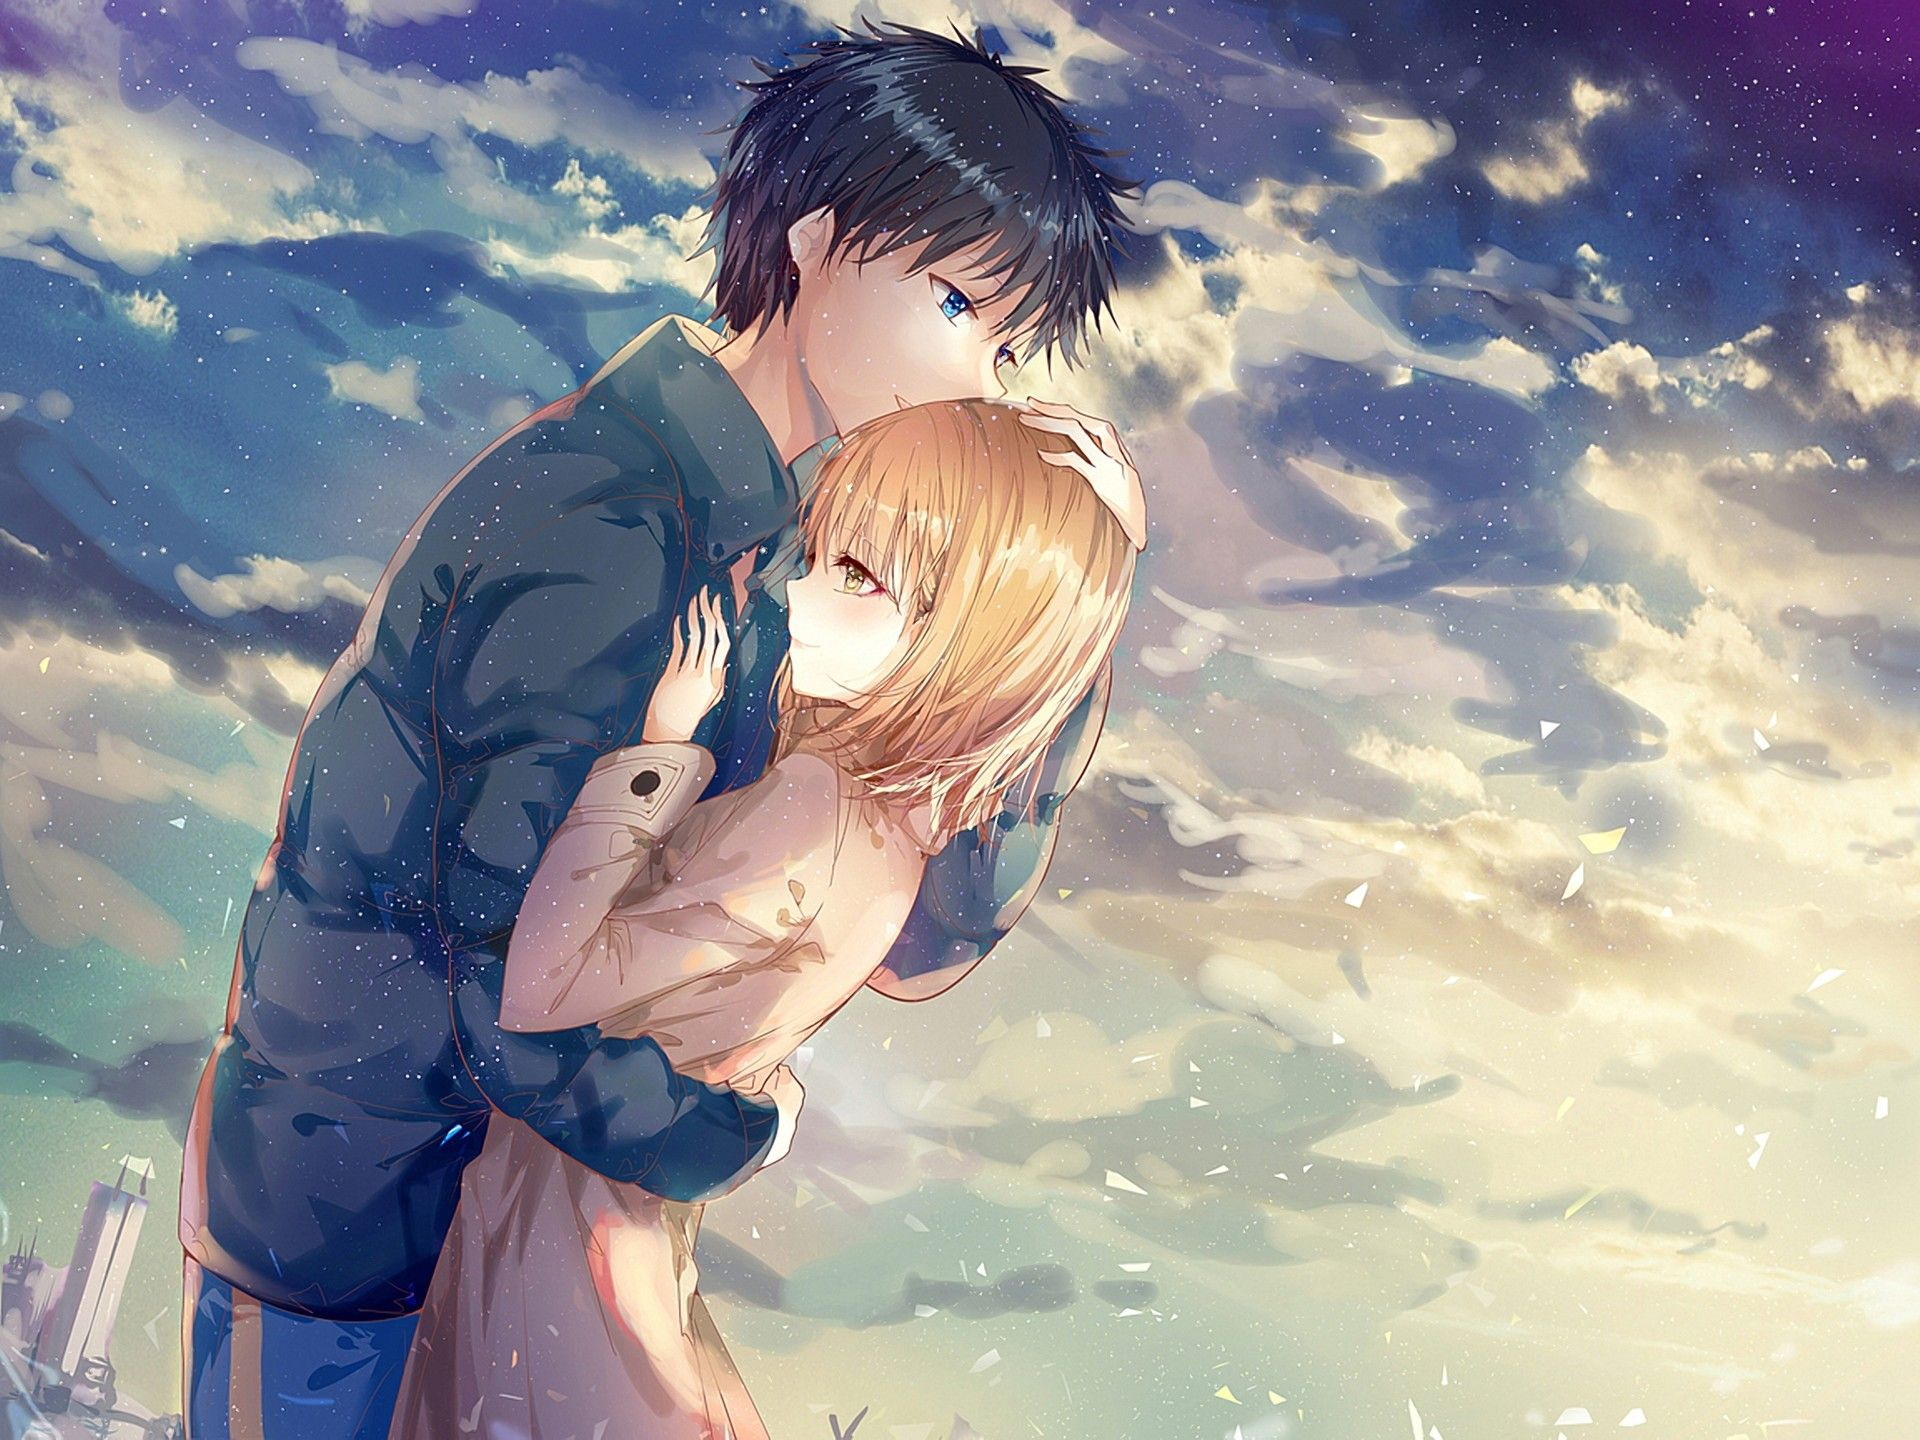 Cute Anime Couples Wallpapers Top Free Cute Anime Couples Backgrounds Wallpaperaccess